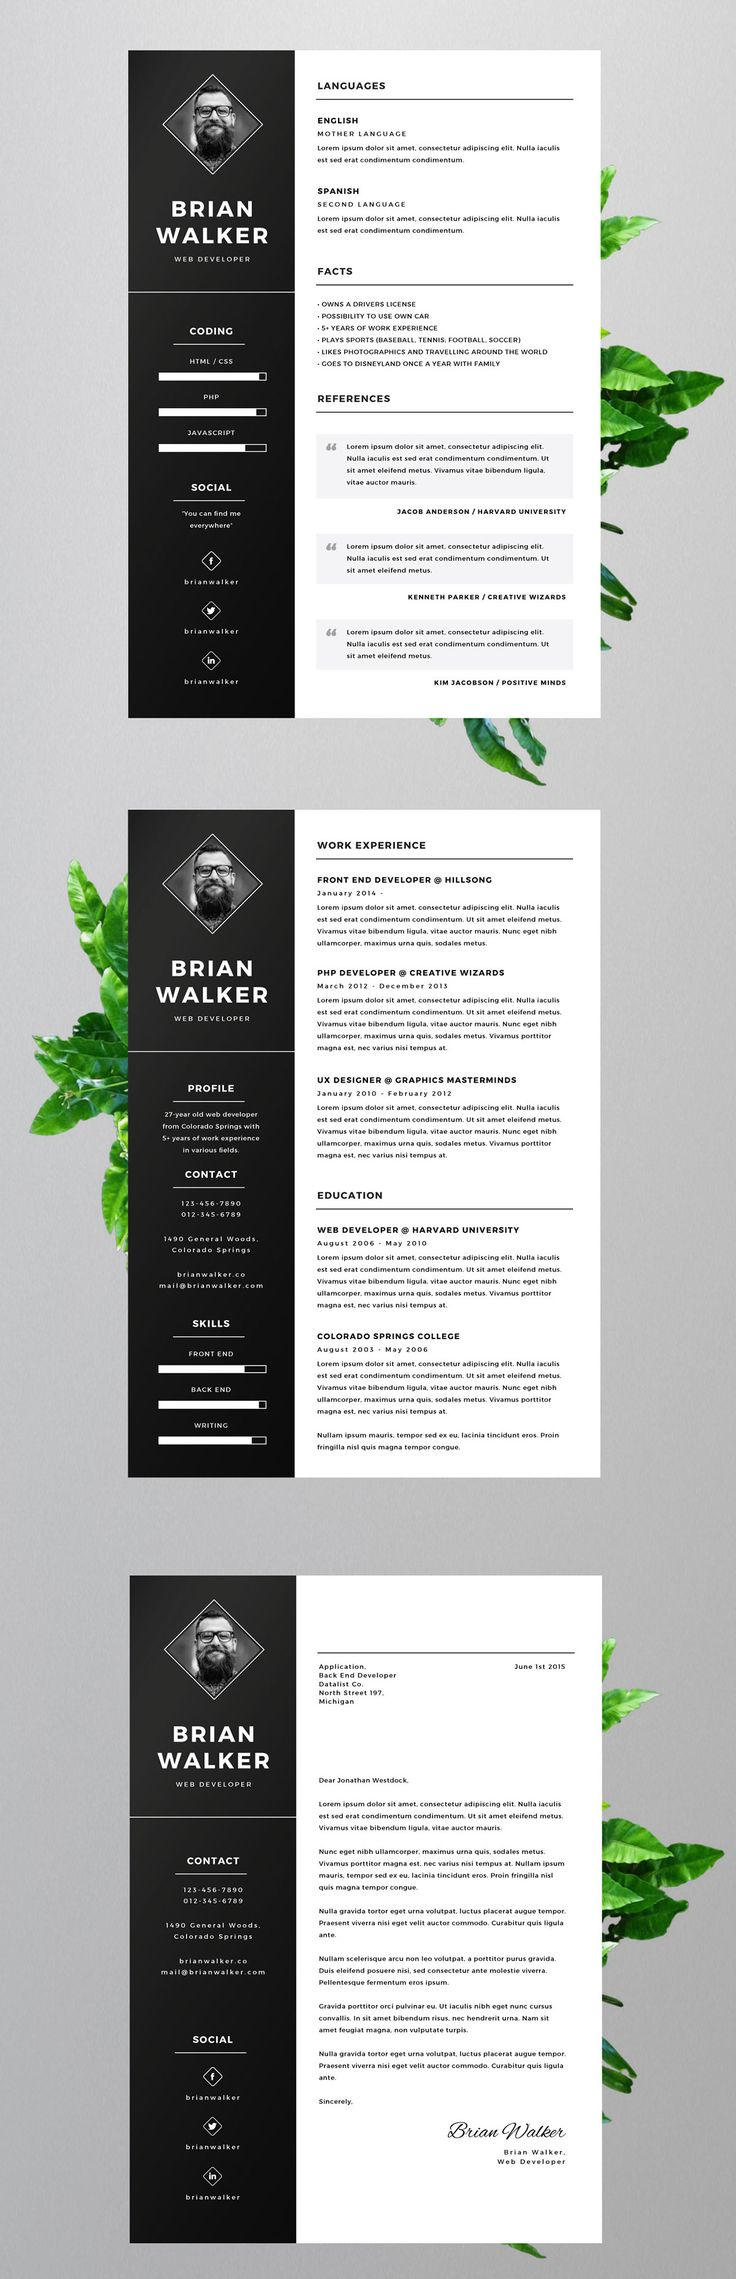 25 best free downloadable resume templates by industry images on pinterest cv template 2nd grades and cover letters - Modern Resume Template Free Download